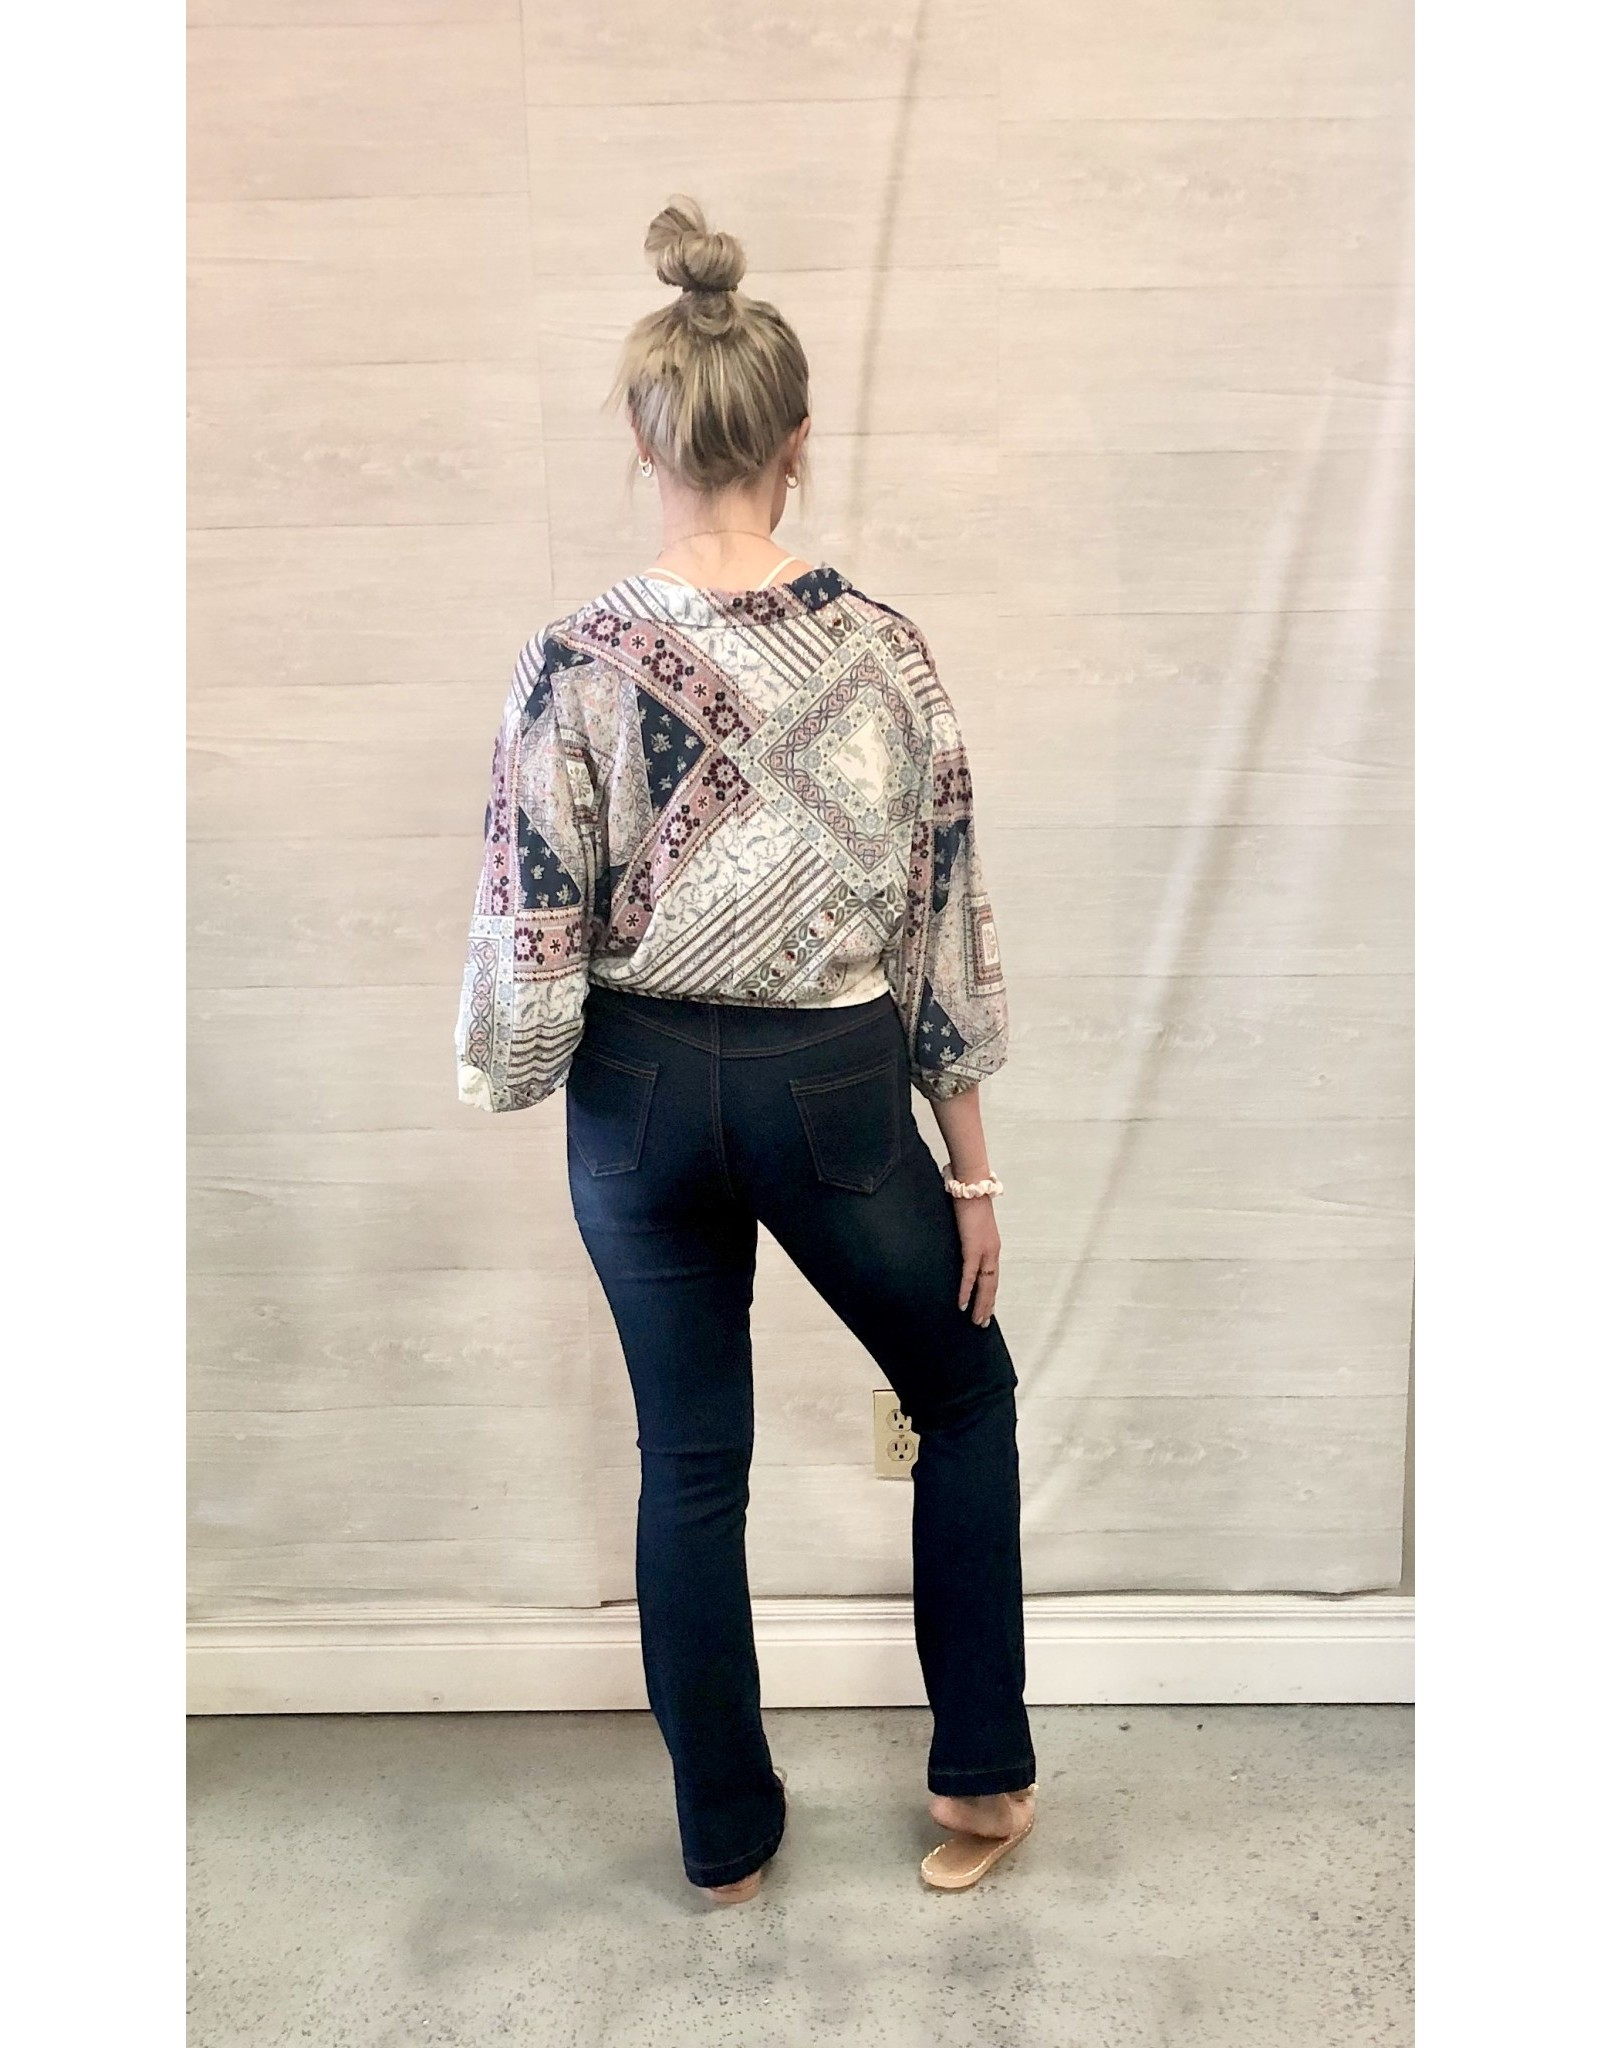 The Ritzy Gypsy RUN FREE Mixed Print Top